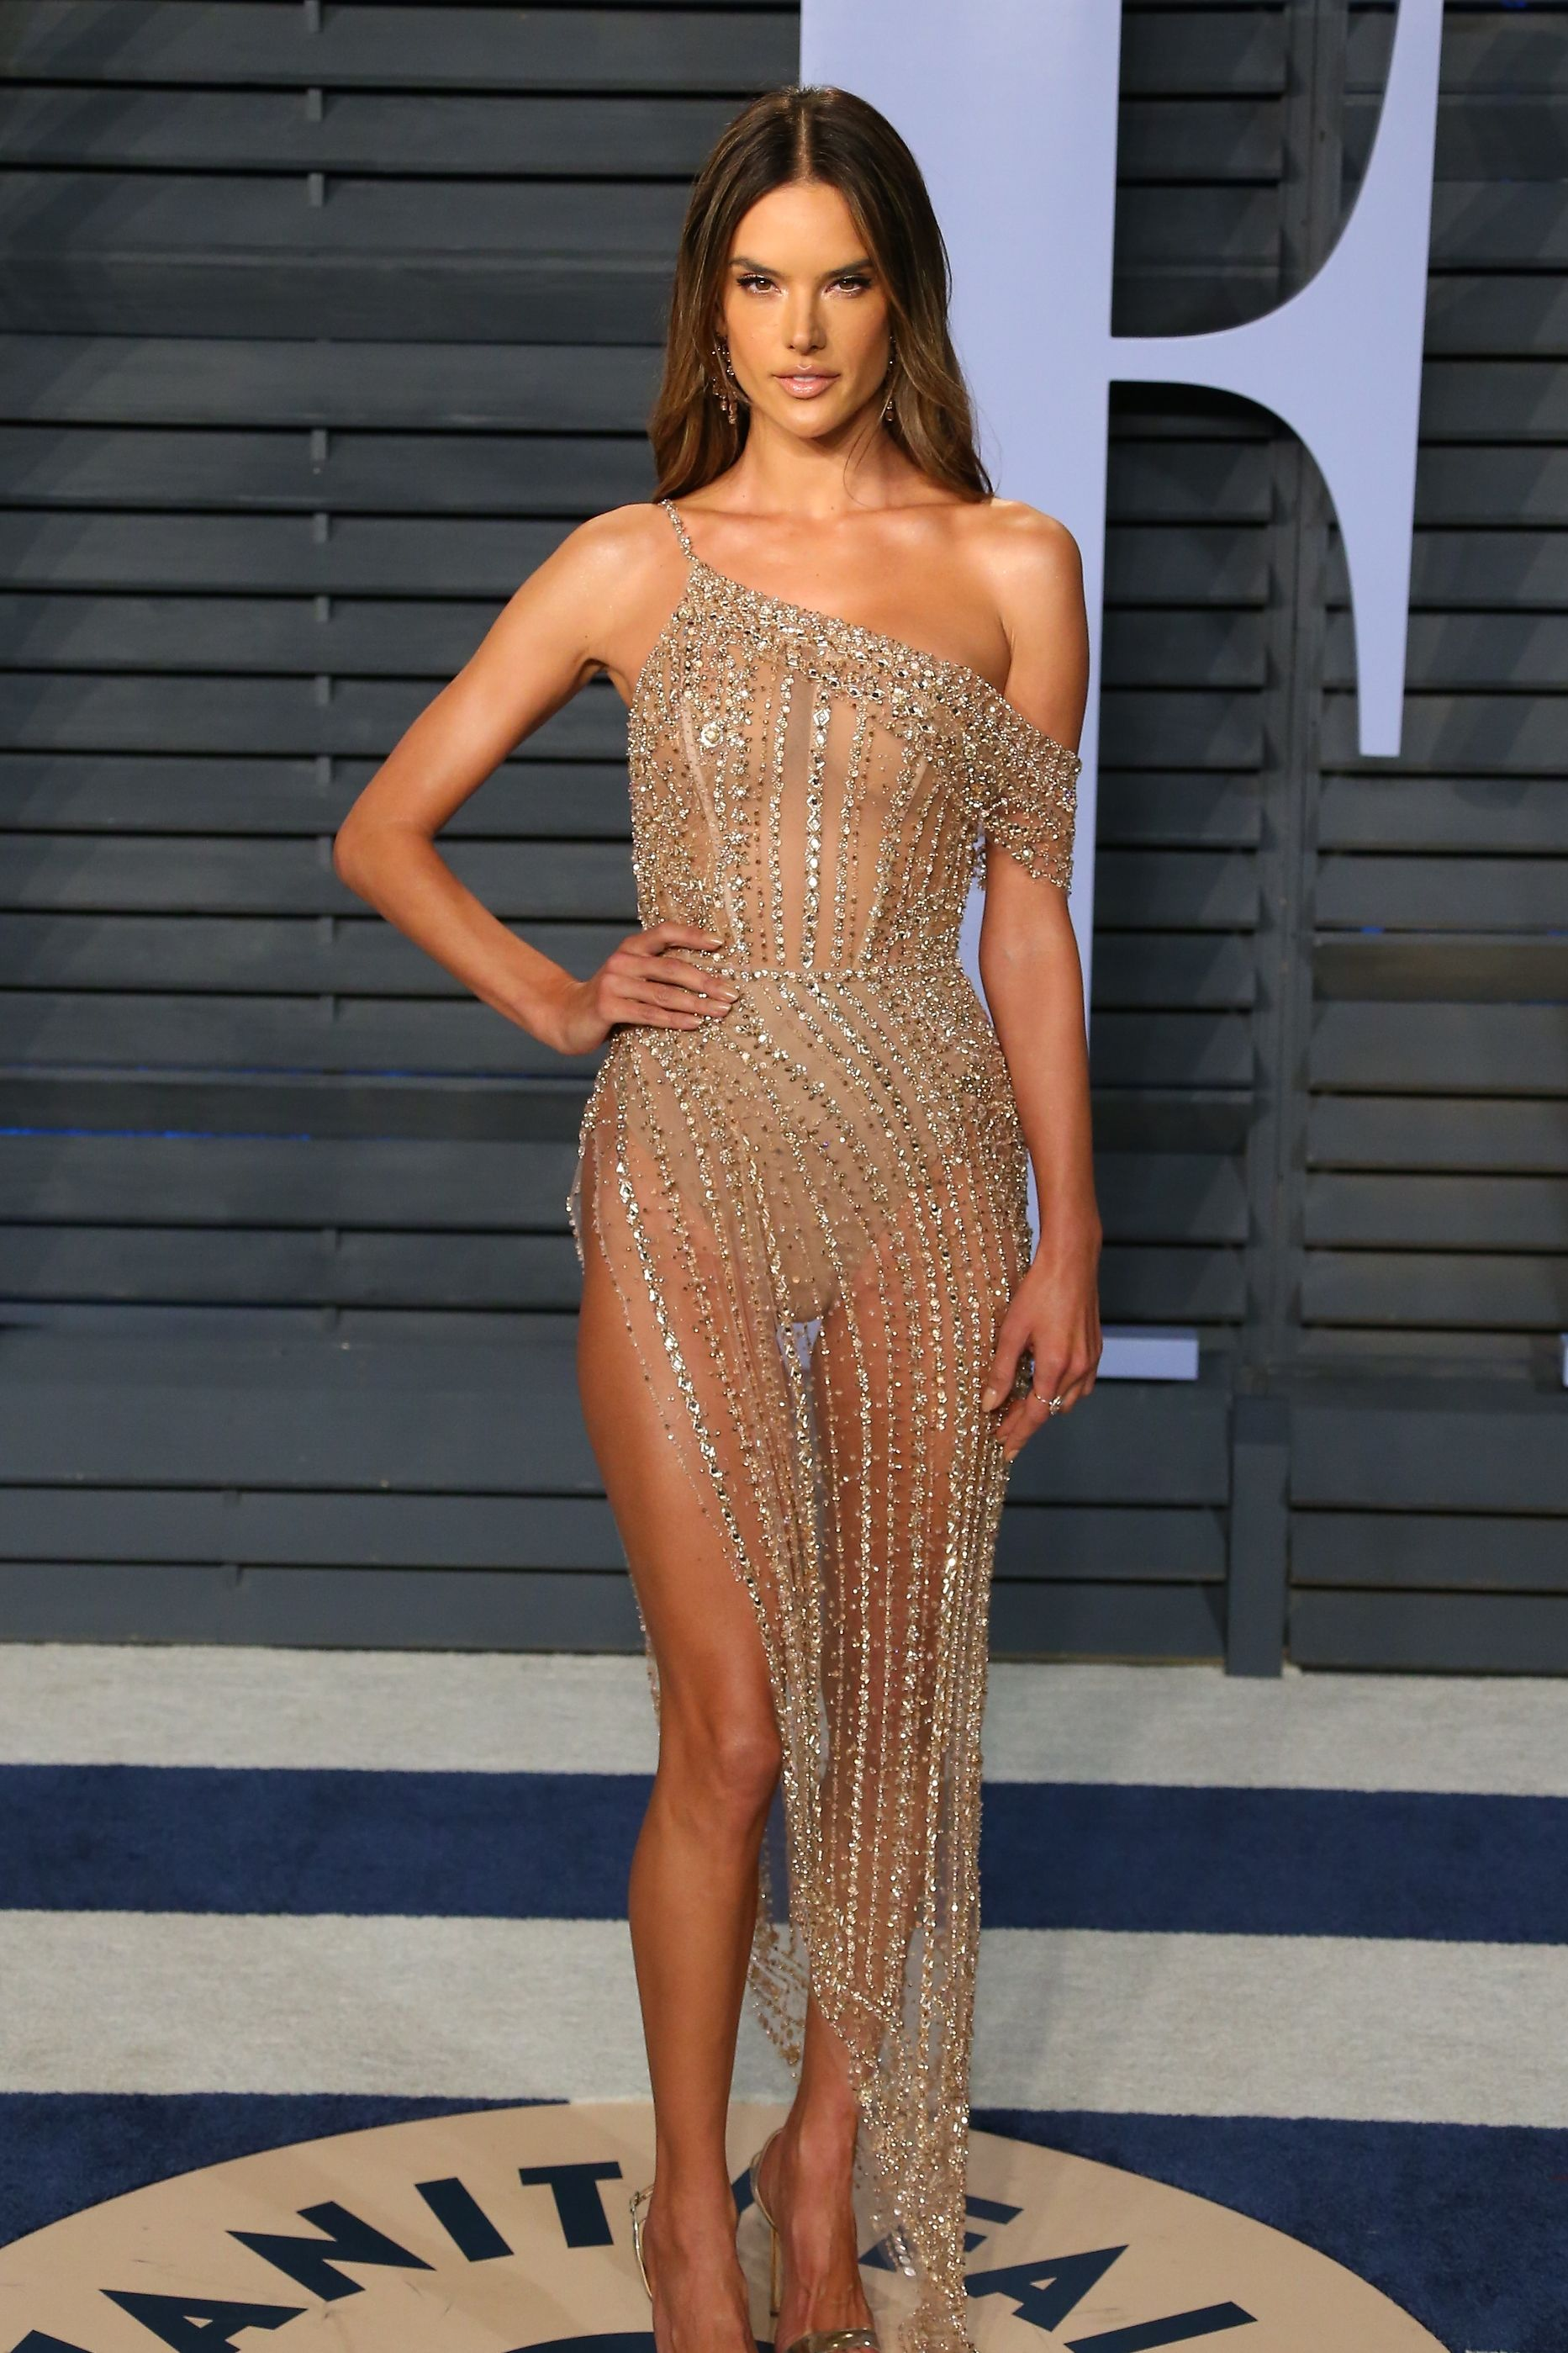 Alessandra Ambrosio The model arrived at Vanity Fair's Oscars after-party in 2018 wearing a bejeweled Ralph & Russo dress with Giuseppe Zanotti shoes and Lorraine Schwartz jewelry. There's no secret she killed it in this naked dress.